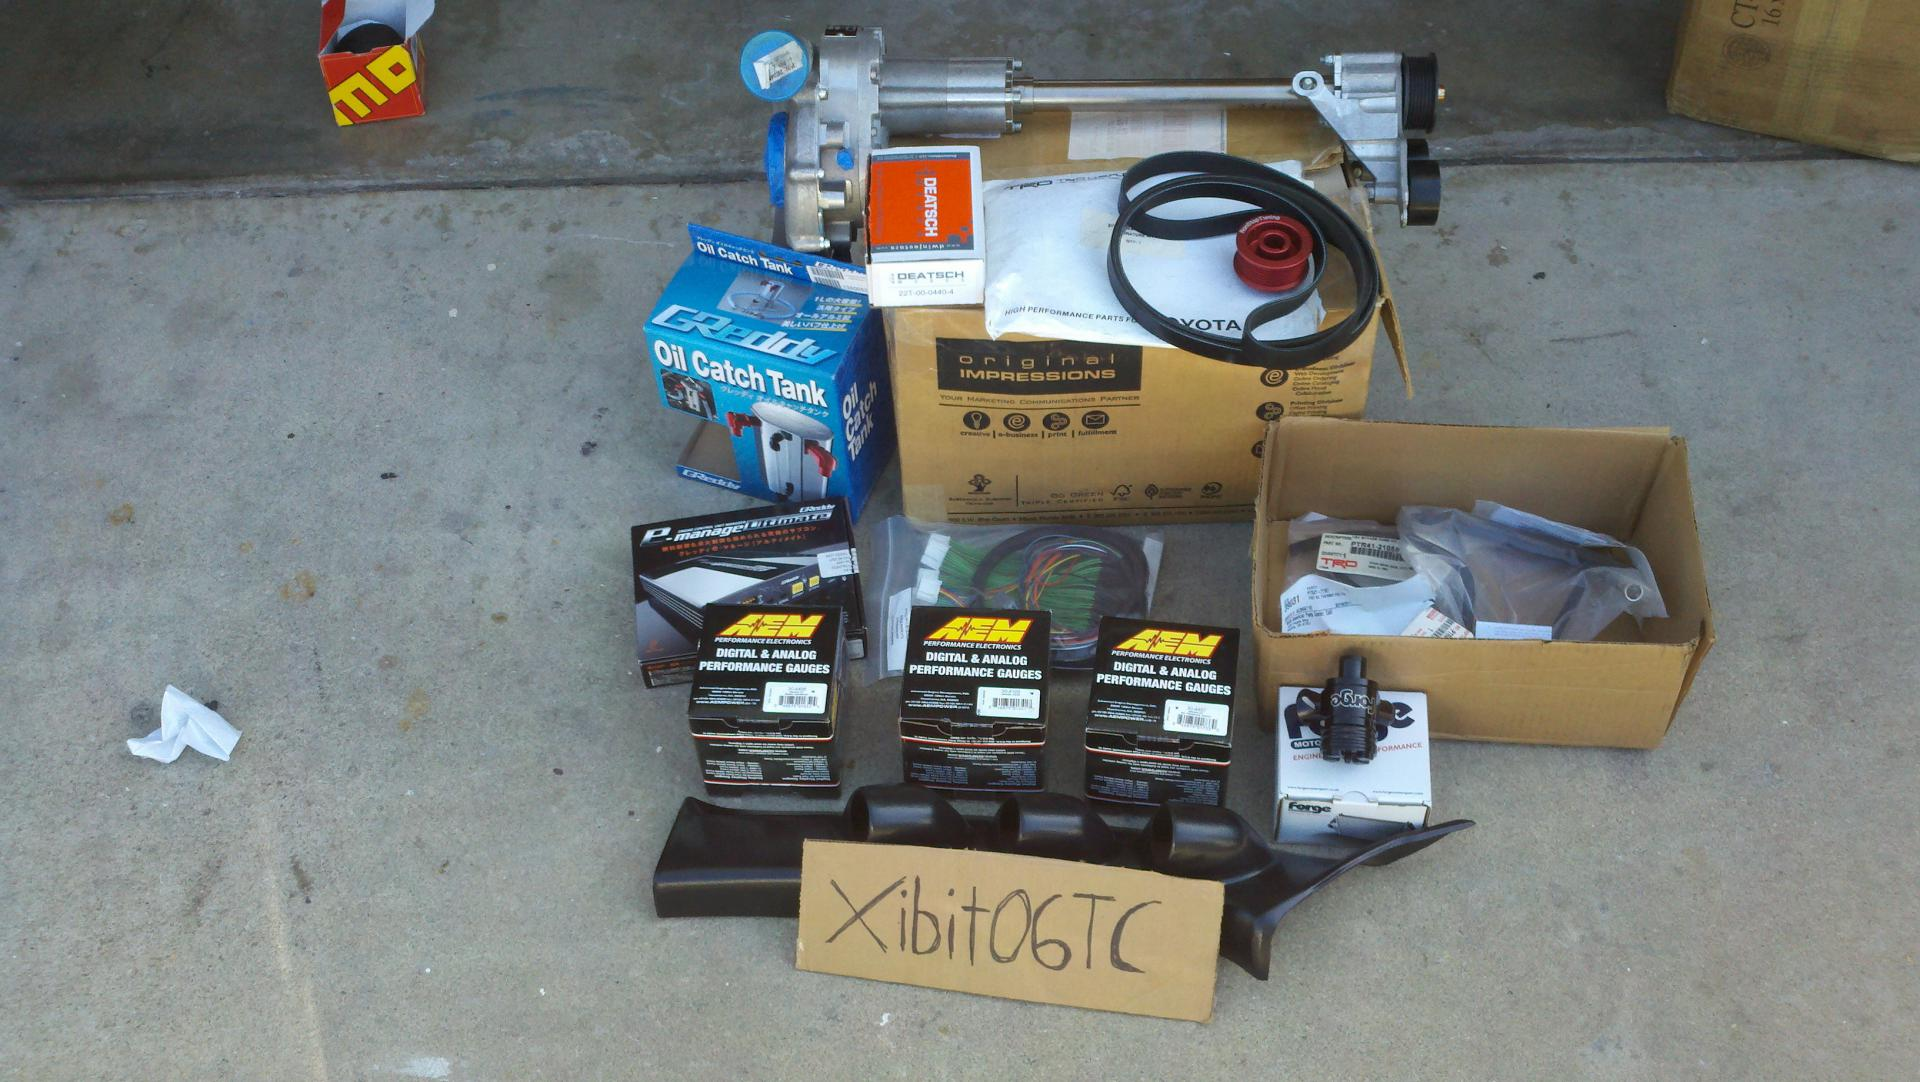 FS: 05-06 Scion TC Supercharger Kit Complete w/ Upgrades-2011-04-17_15-30-25_132.jpg